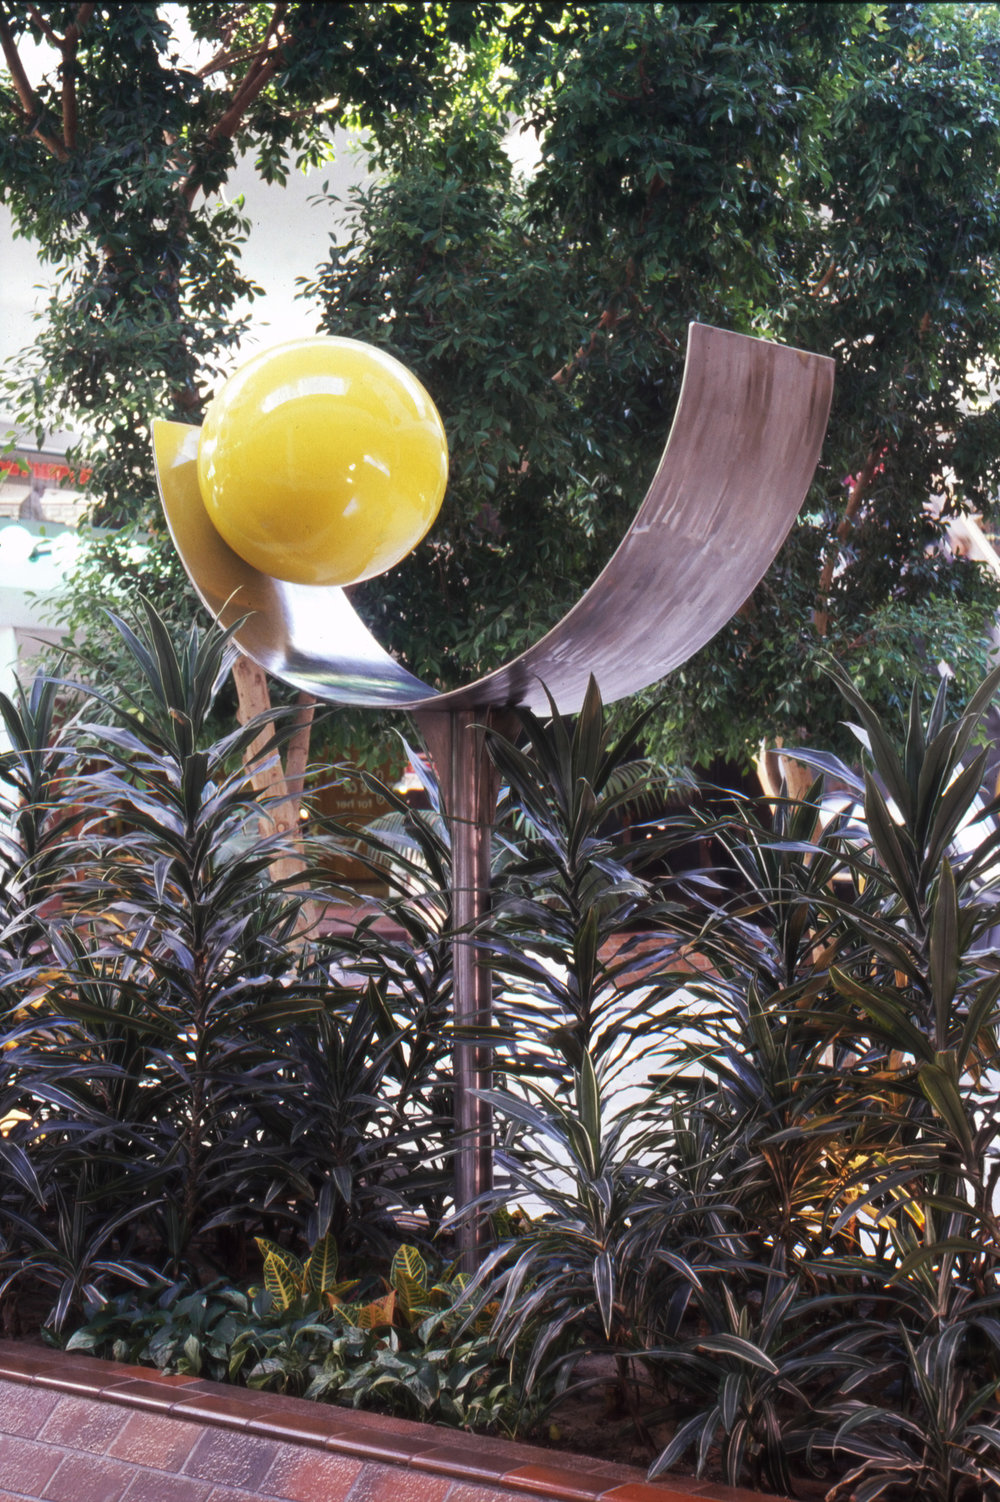 Yellow Ball 1975, stainless steel and aluminum, 72x60x24 in